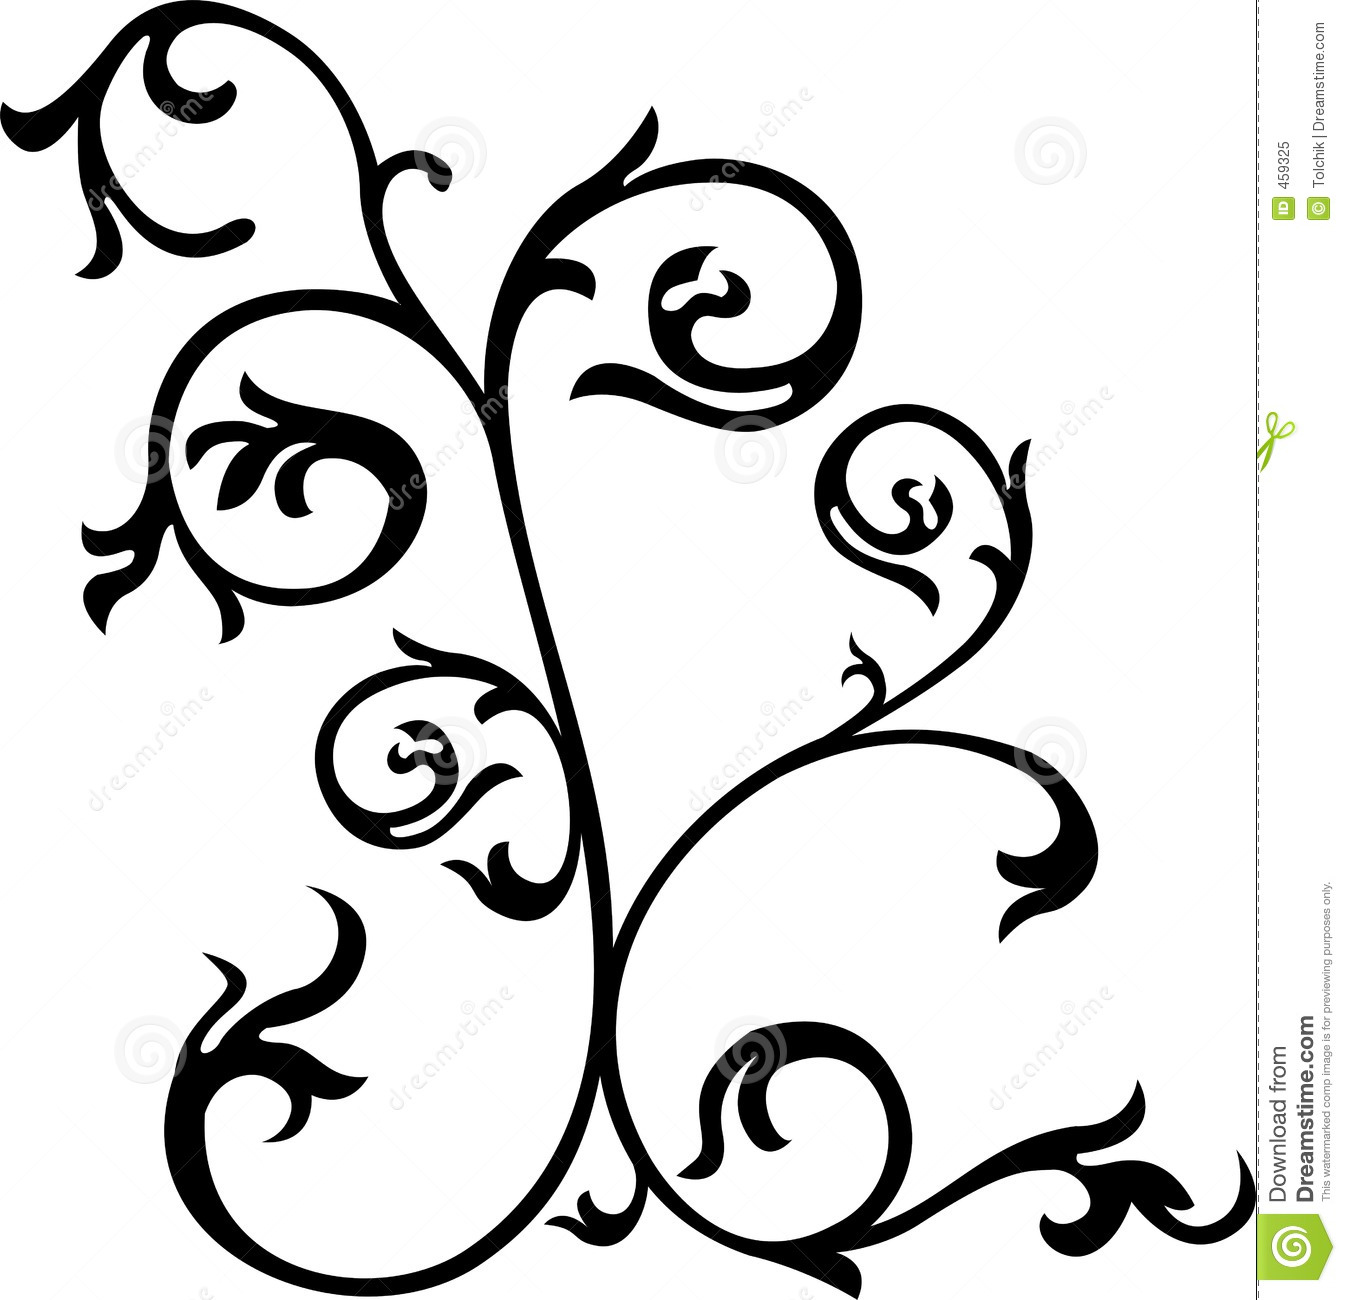 Download Scroll, Cartouche, Decor, Vector Stock Vector - Illustration of cartouche, element: 459325